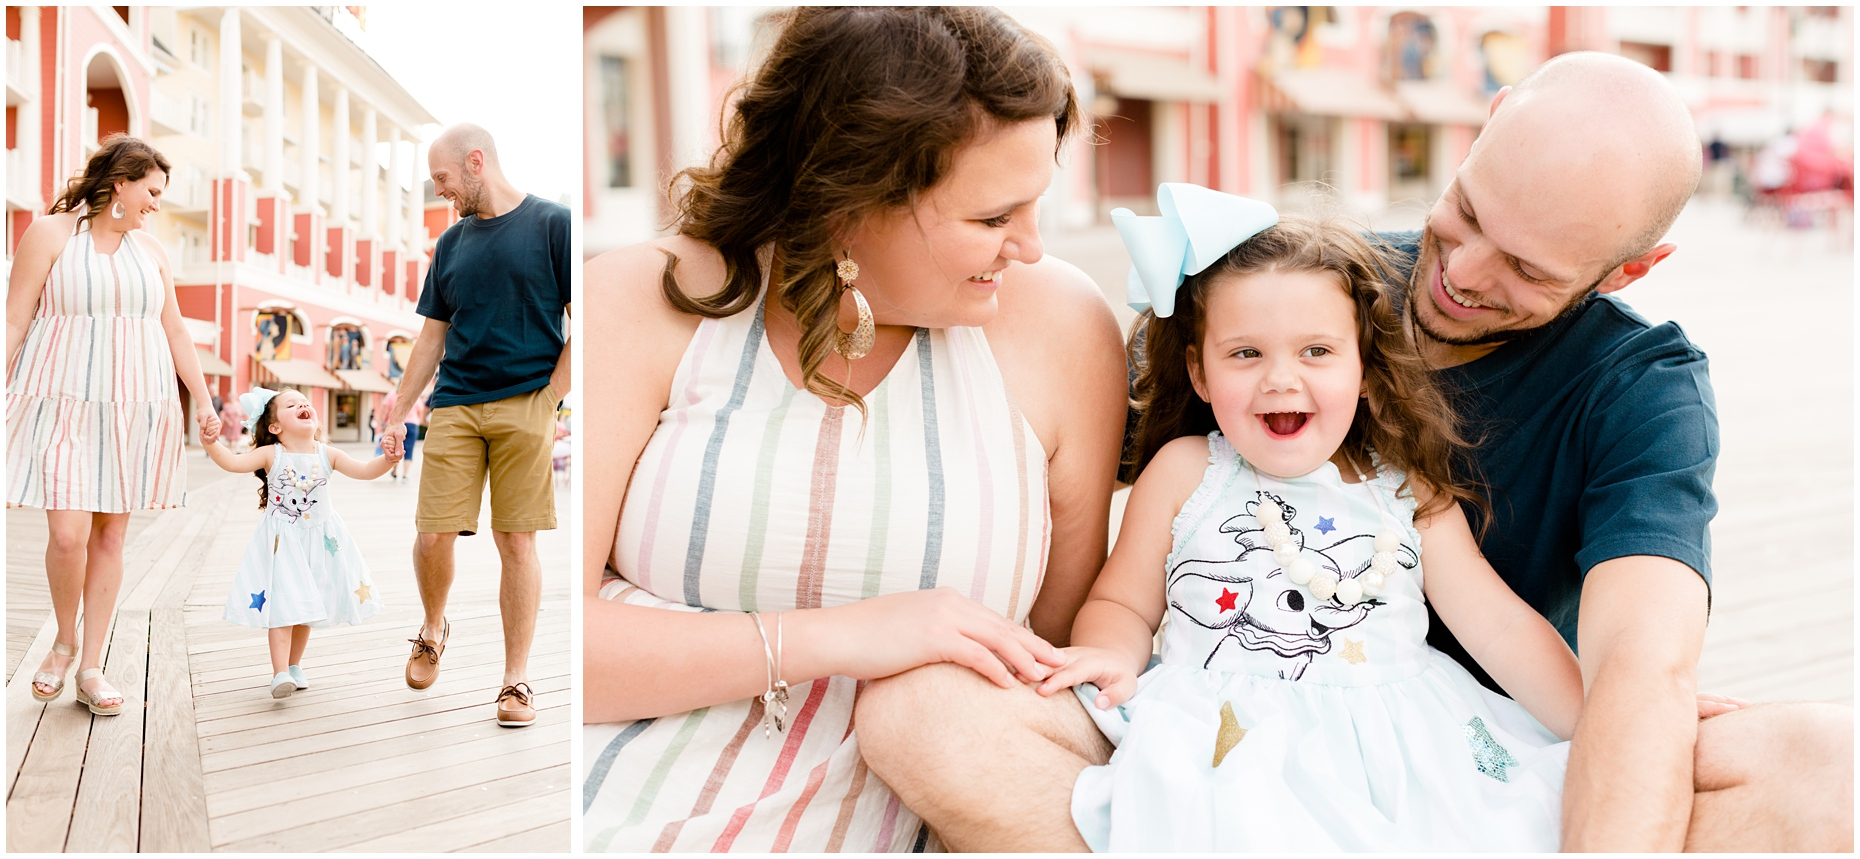 Abbott_Orlando_Central_Florida_Family_Professional_Photographer